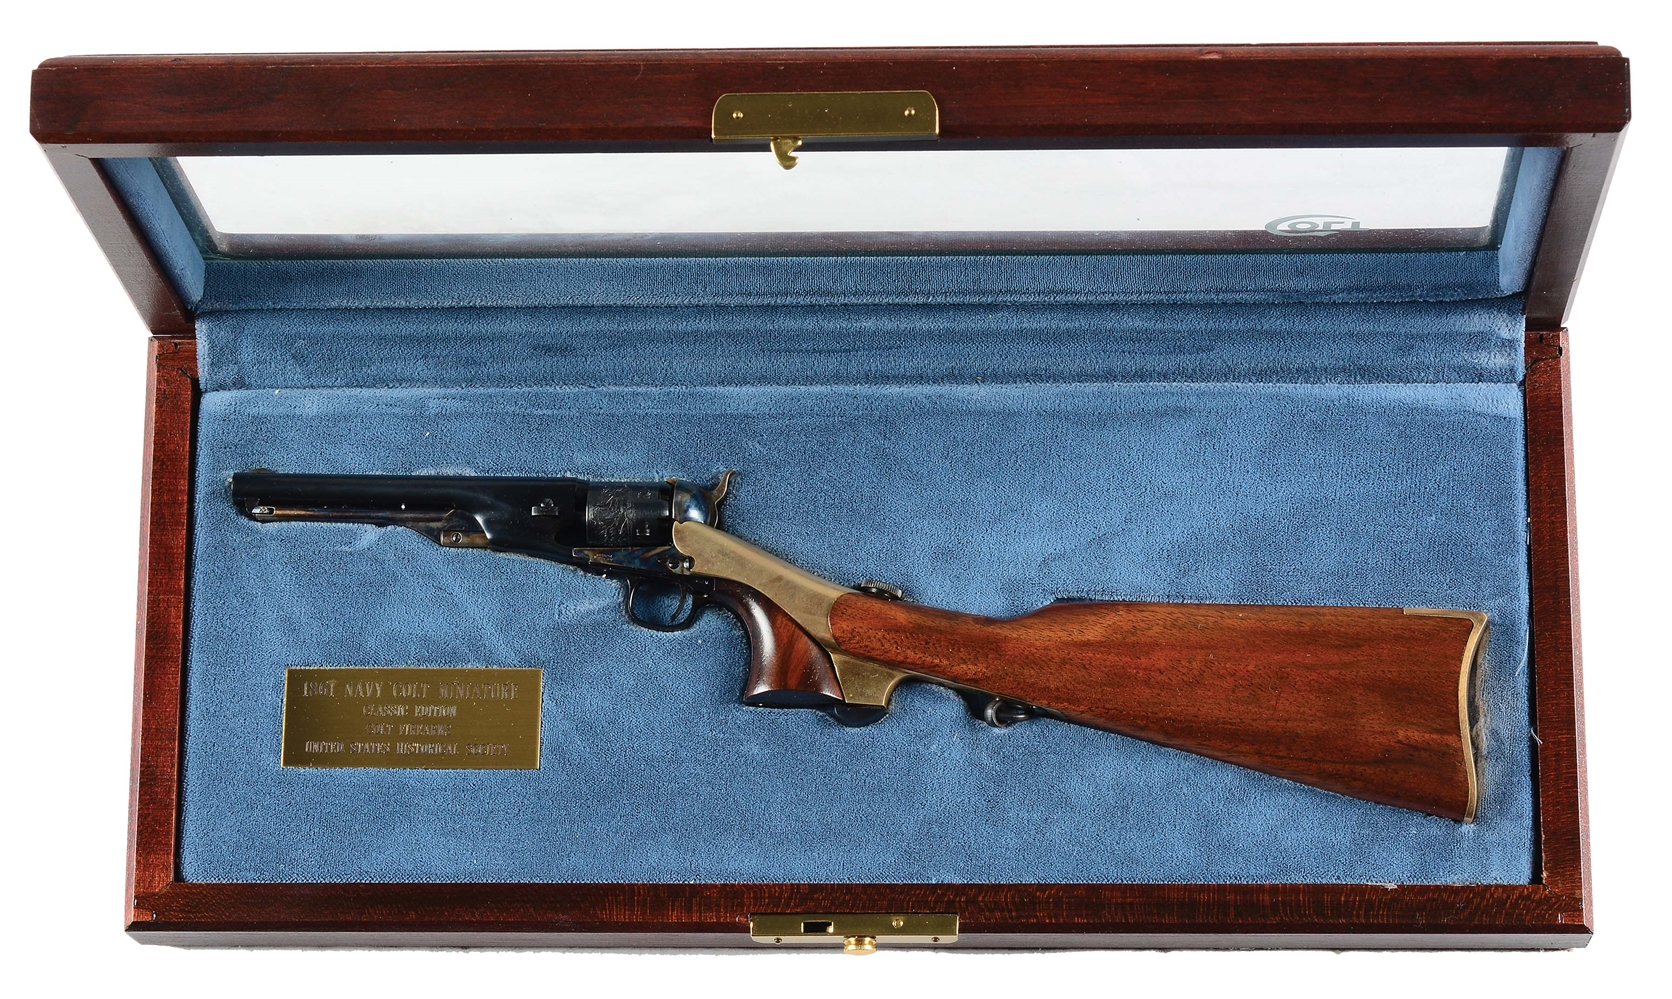 Cased United States Historical Society Colt 1861 Navy Miniature Revolver with Matching Stock.